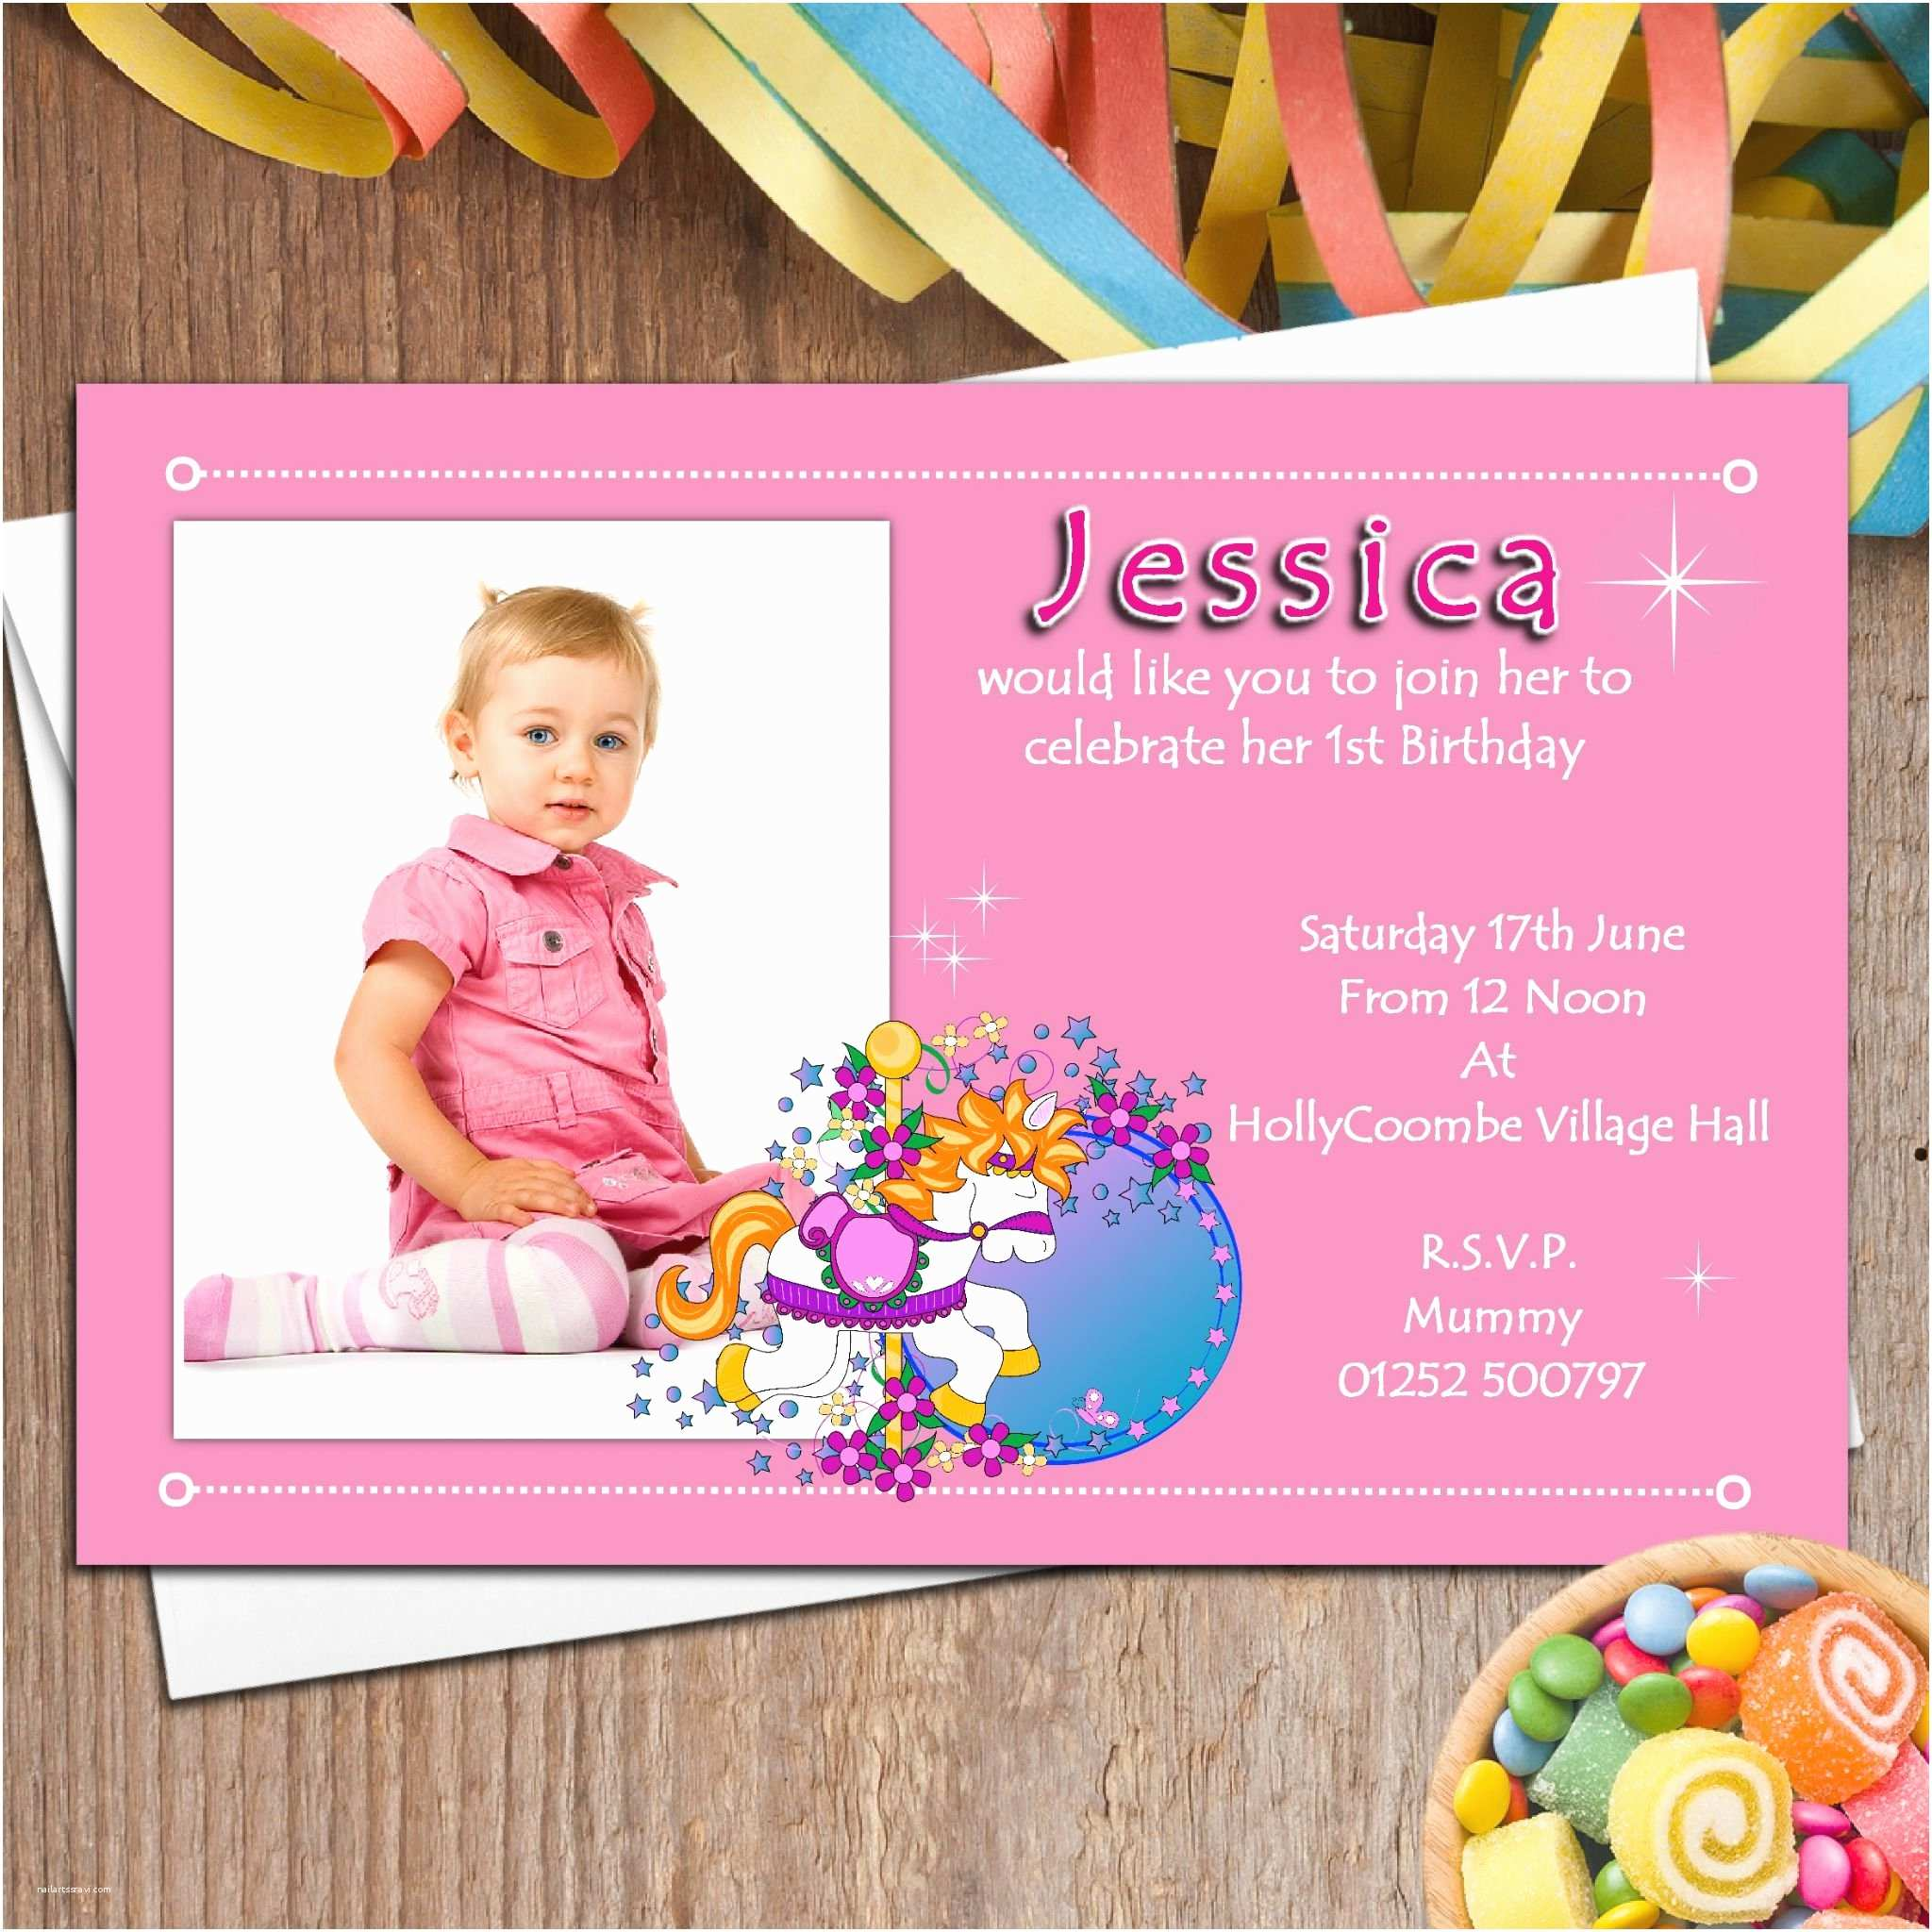 Custom Birthday Invitations Birthday Cards Near Me – Gangcraft